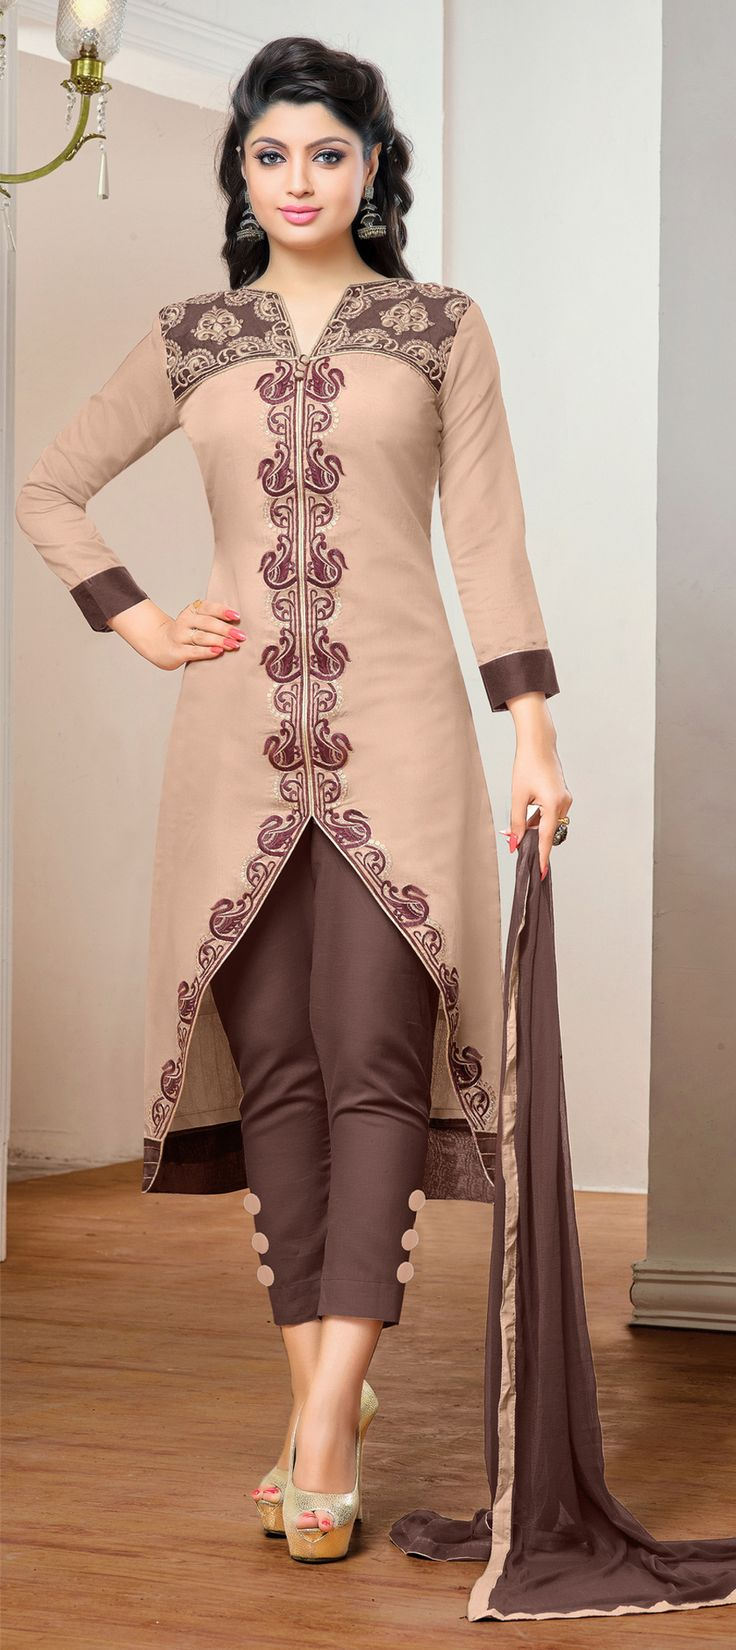 458382: Beige and Brown color family stitched Cotton Salwar Kameez,Party Wear Salwar Kameez .